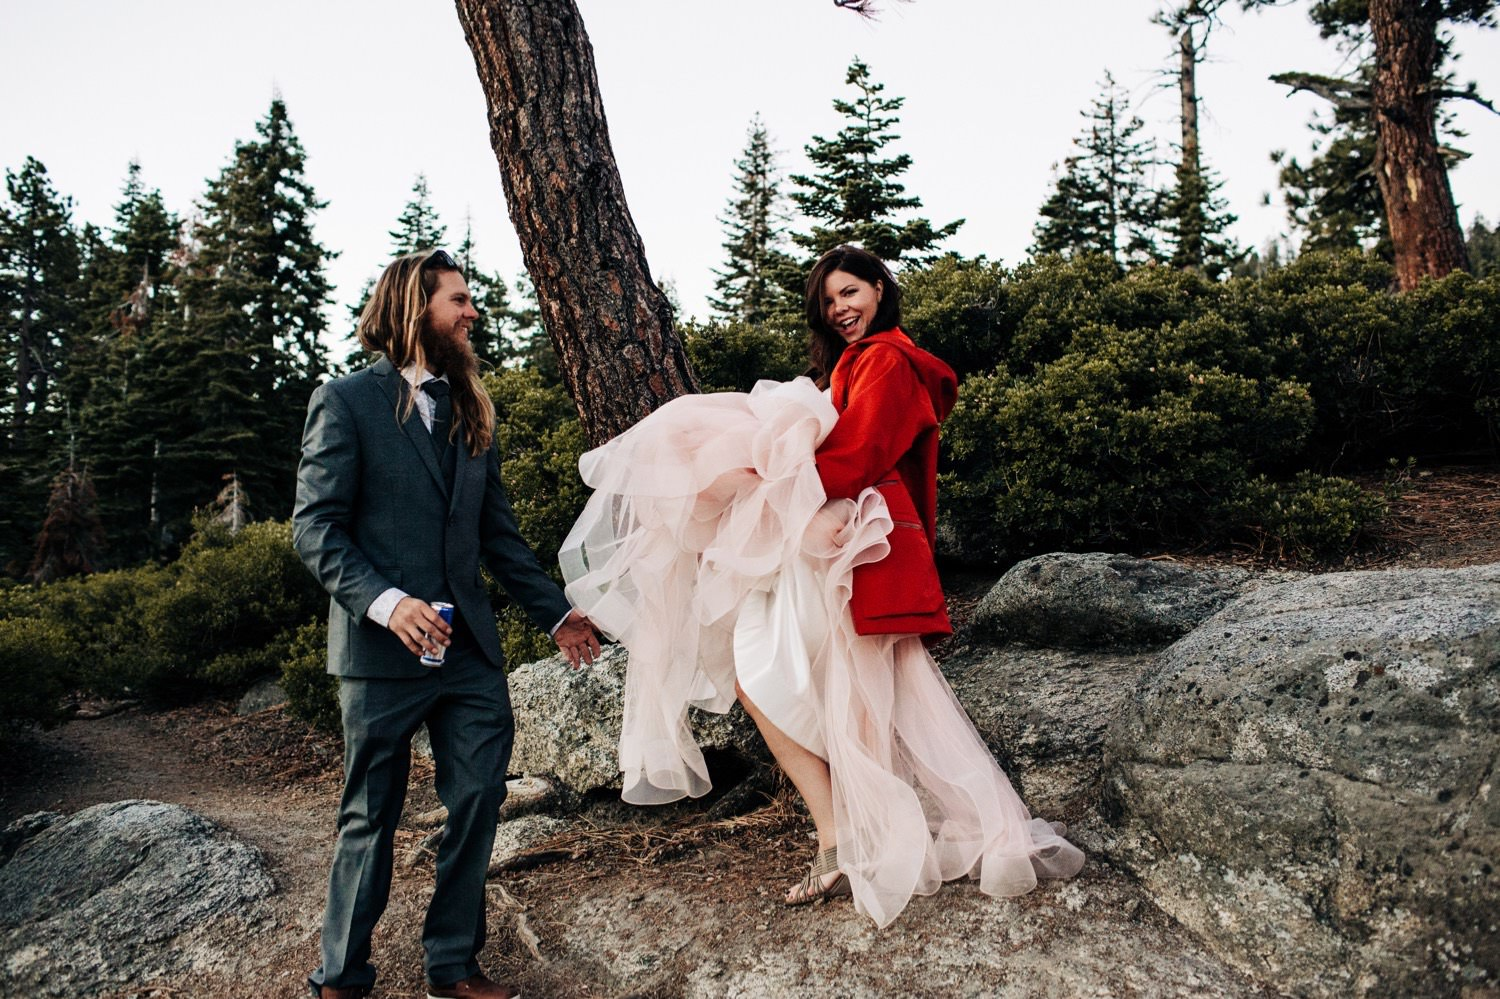 01_alex+matt-wedding-2_park_national_elopement_wedding_yosemite_intimate.jpg